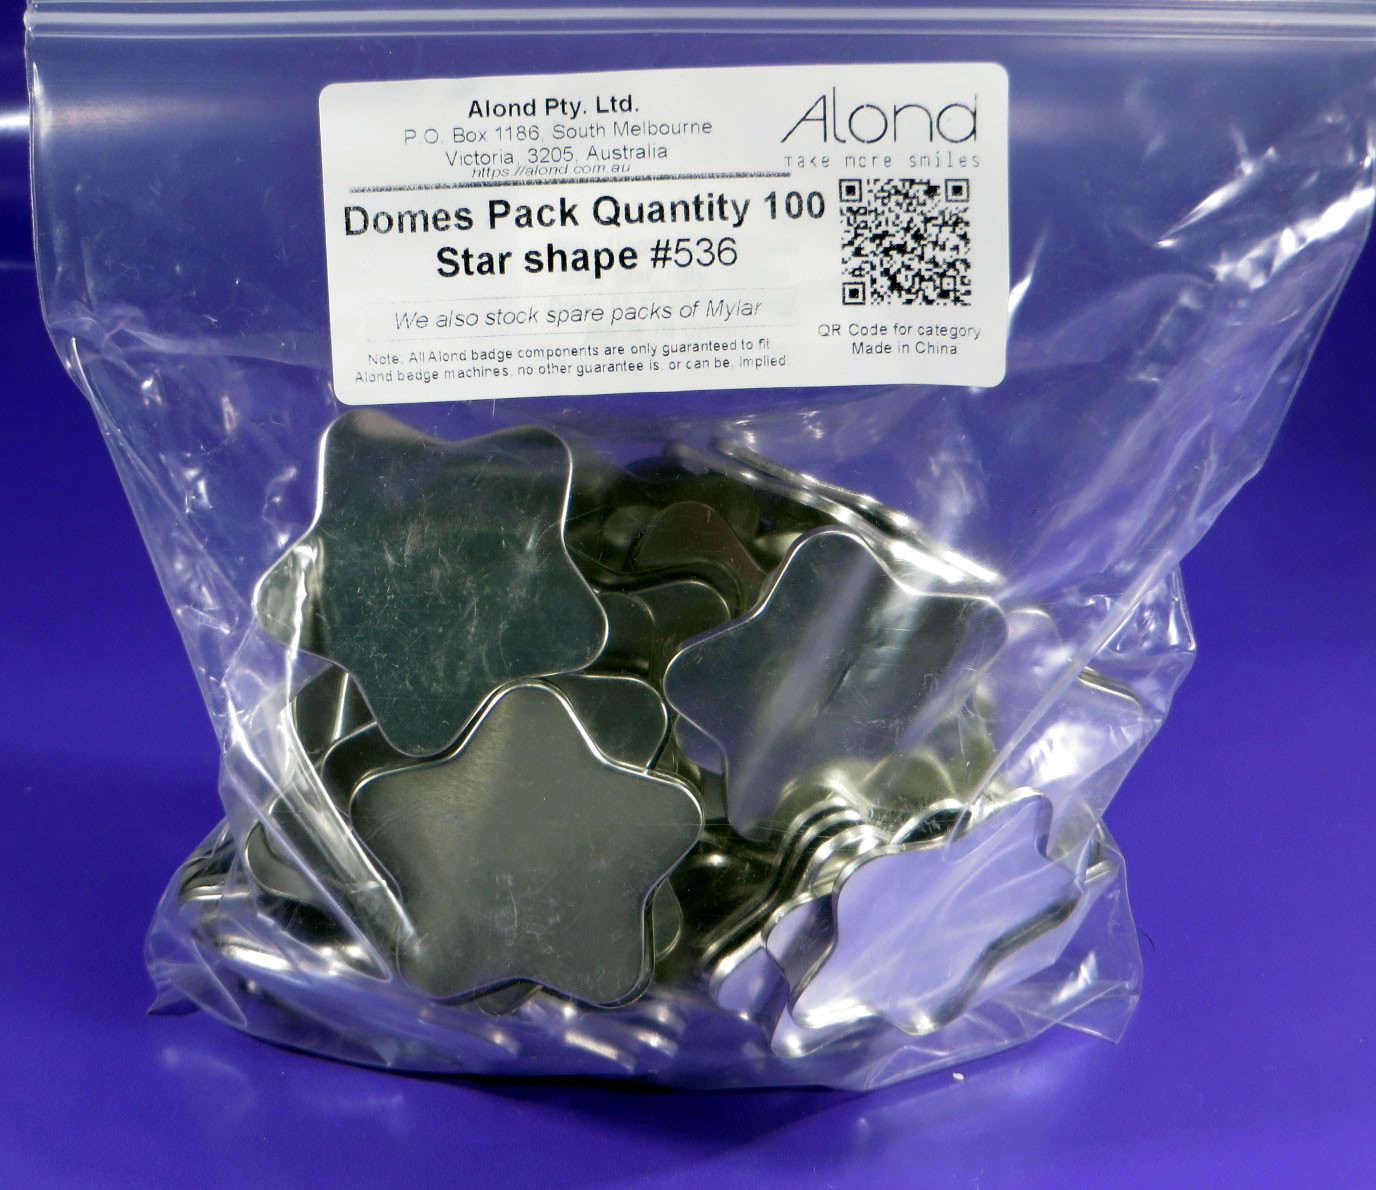 star shape domes (shells) for Alond badge makers